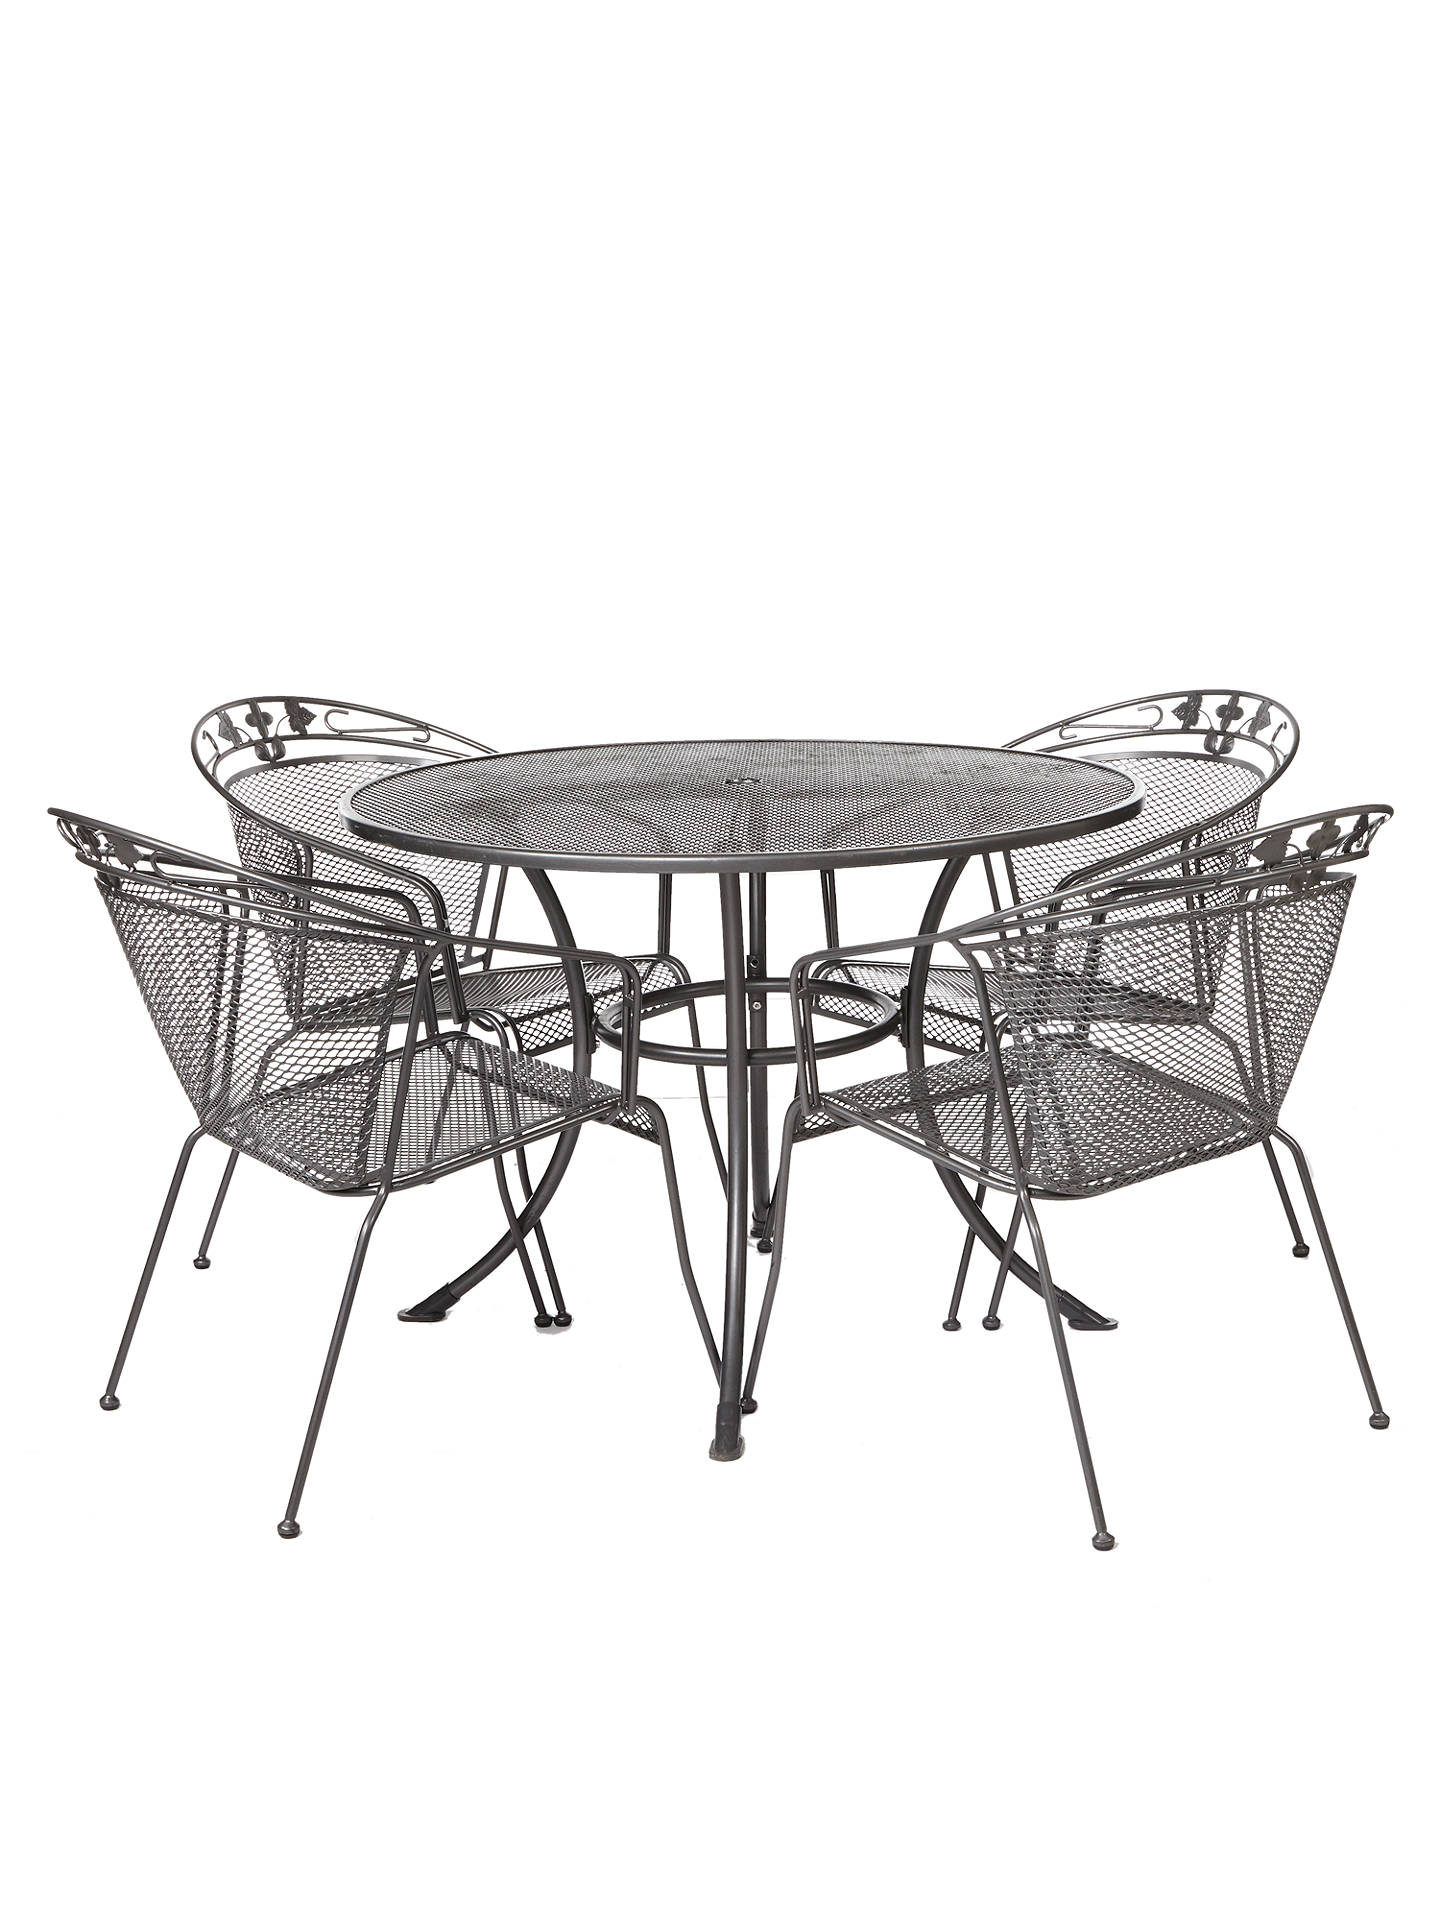 BuyJohn Lewis & Partners Henley by KETTLER 4-Seater Garden Dining Table, Grey Online at johnlewis.com